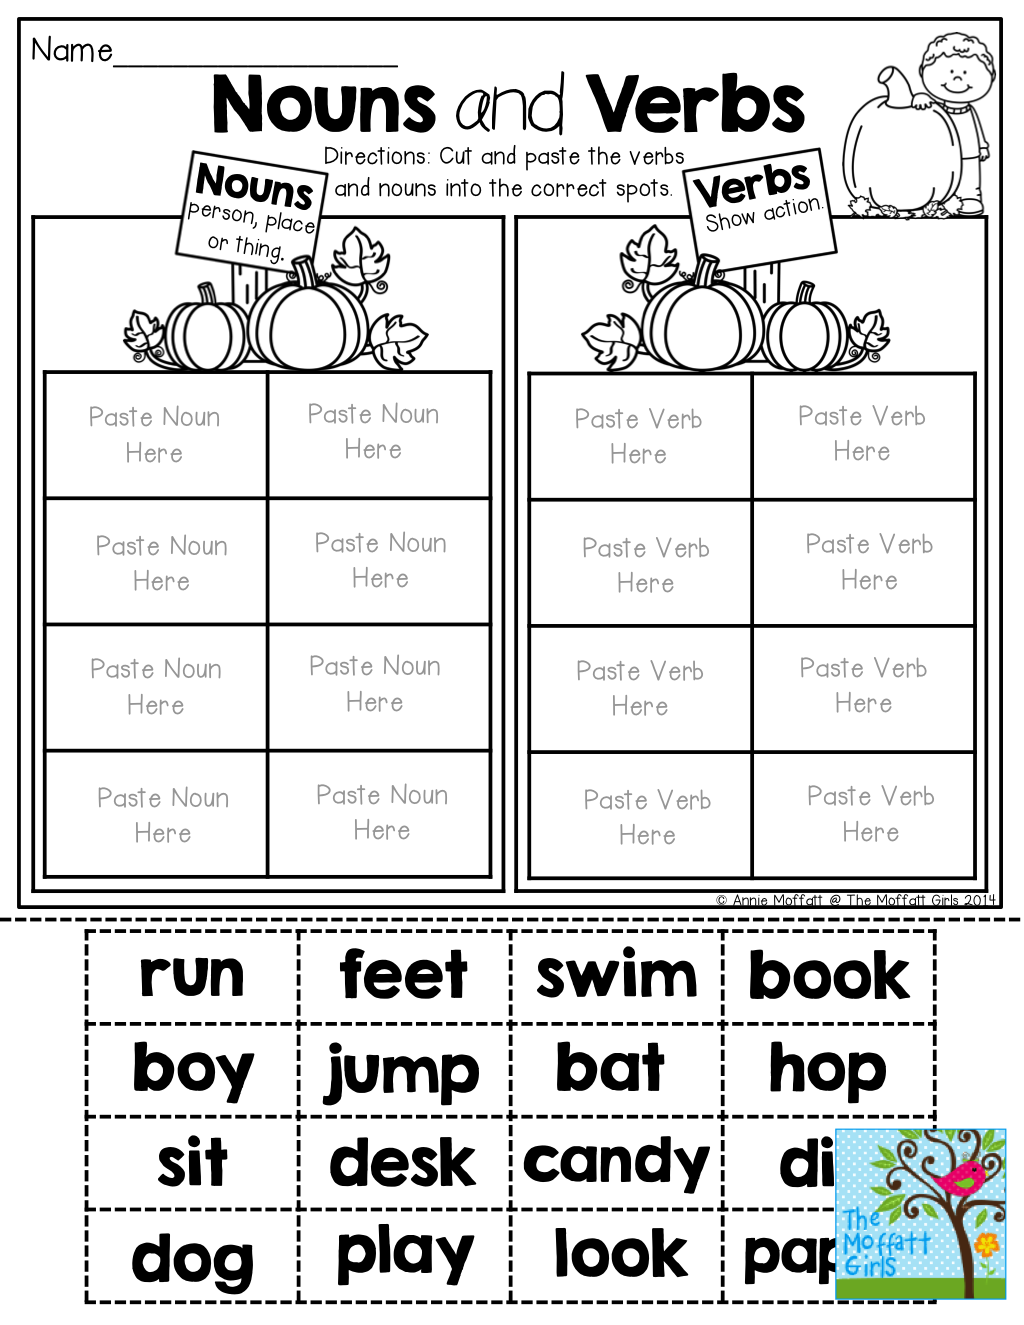 nouns and verbs sorting tons of fun printables write nouns verbs nouns verbs verb. Black Bedroom Furniture Sets. Home Design Ideas